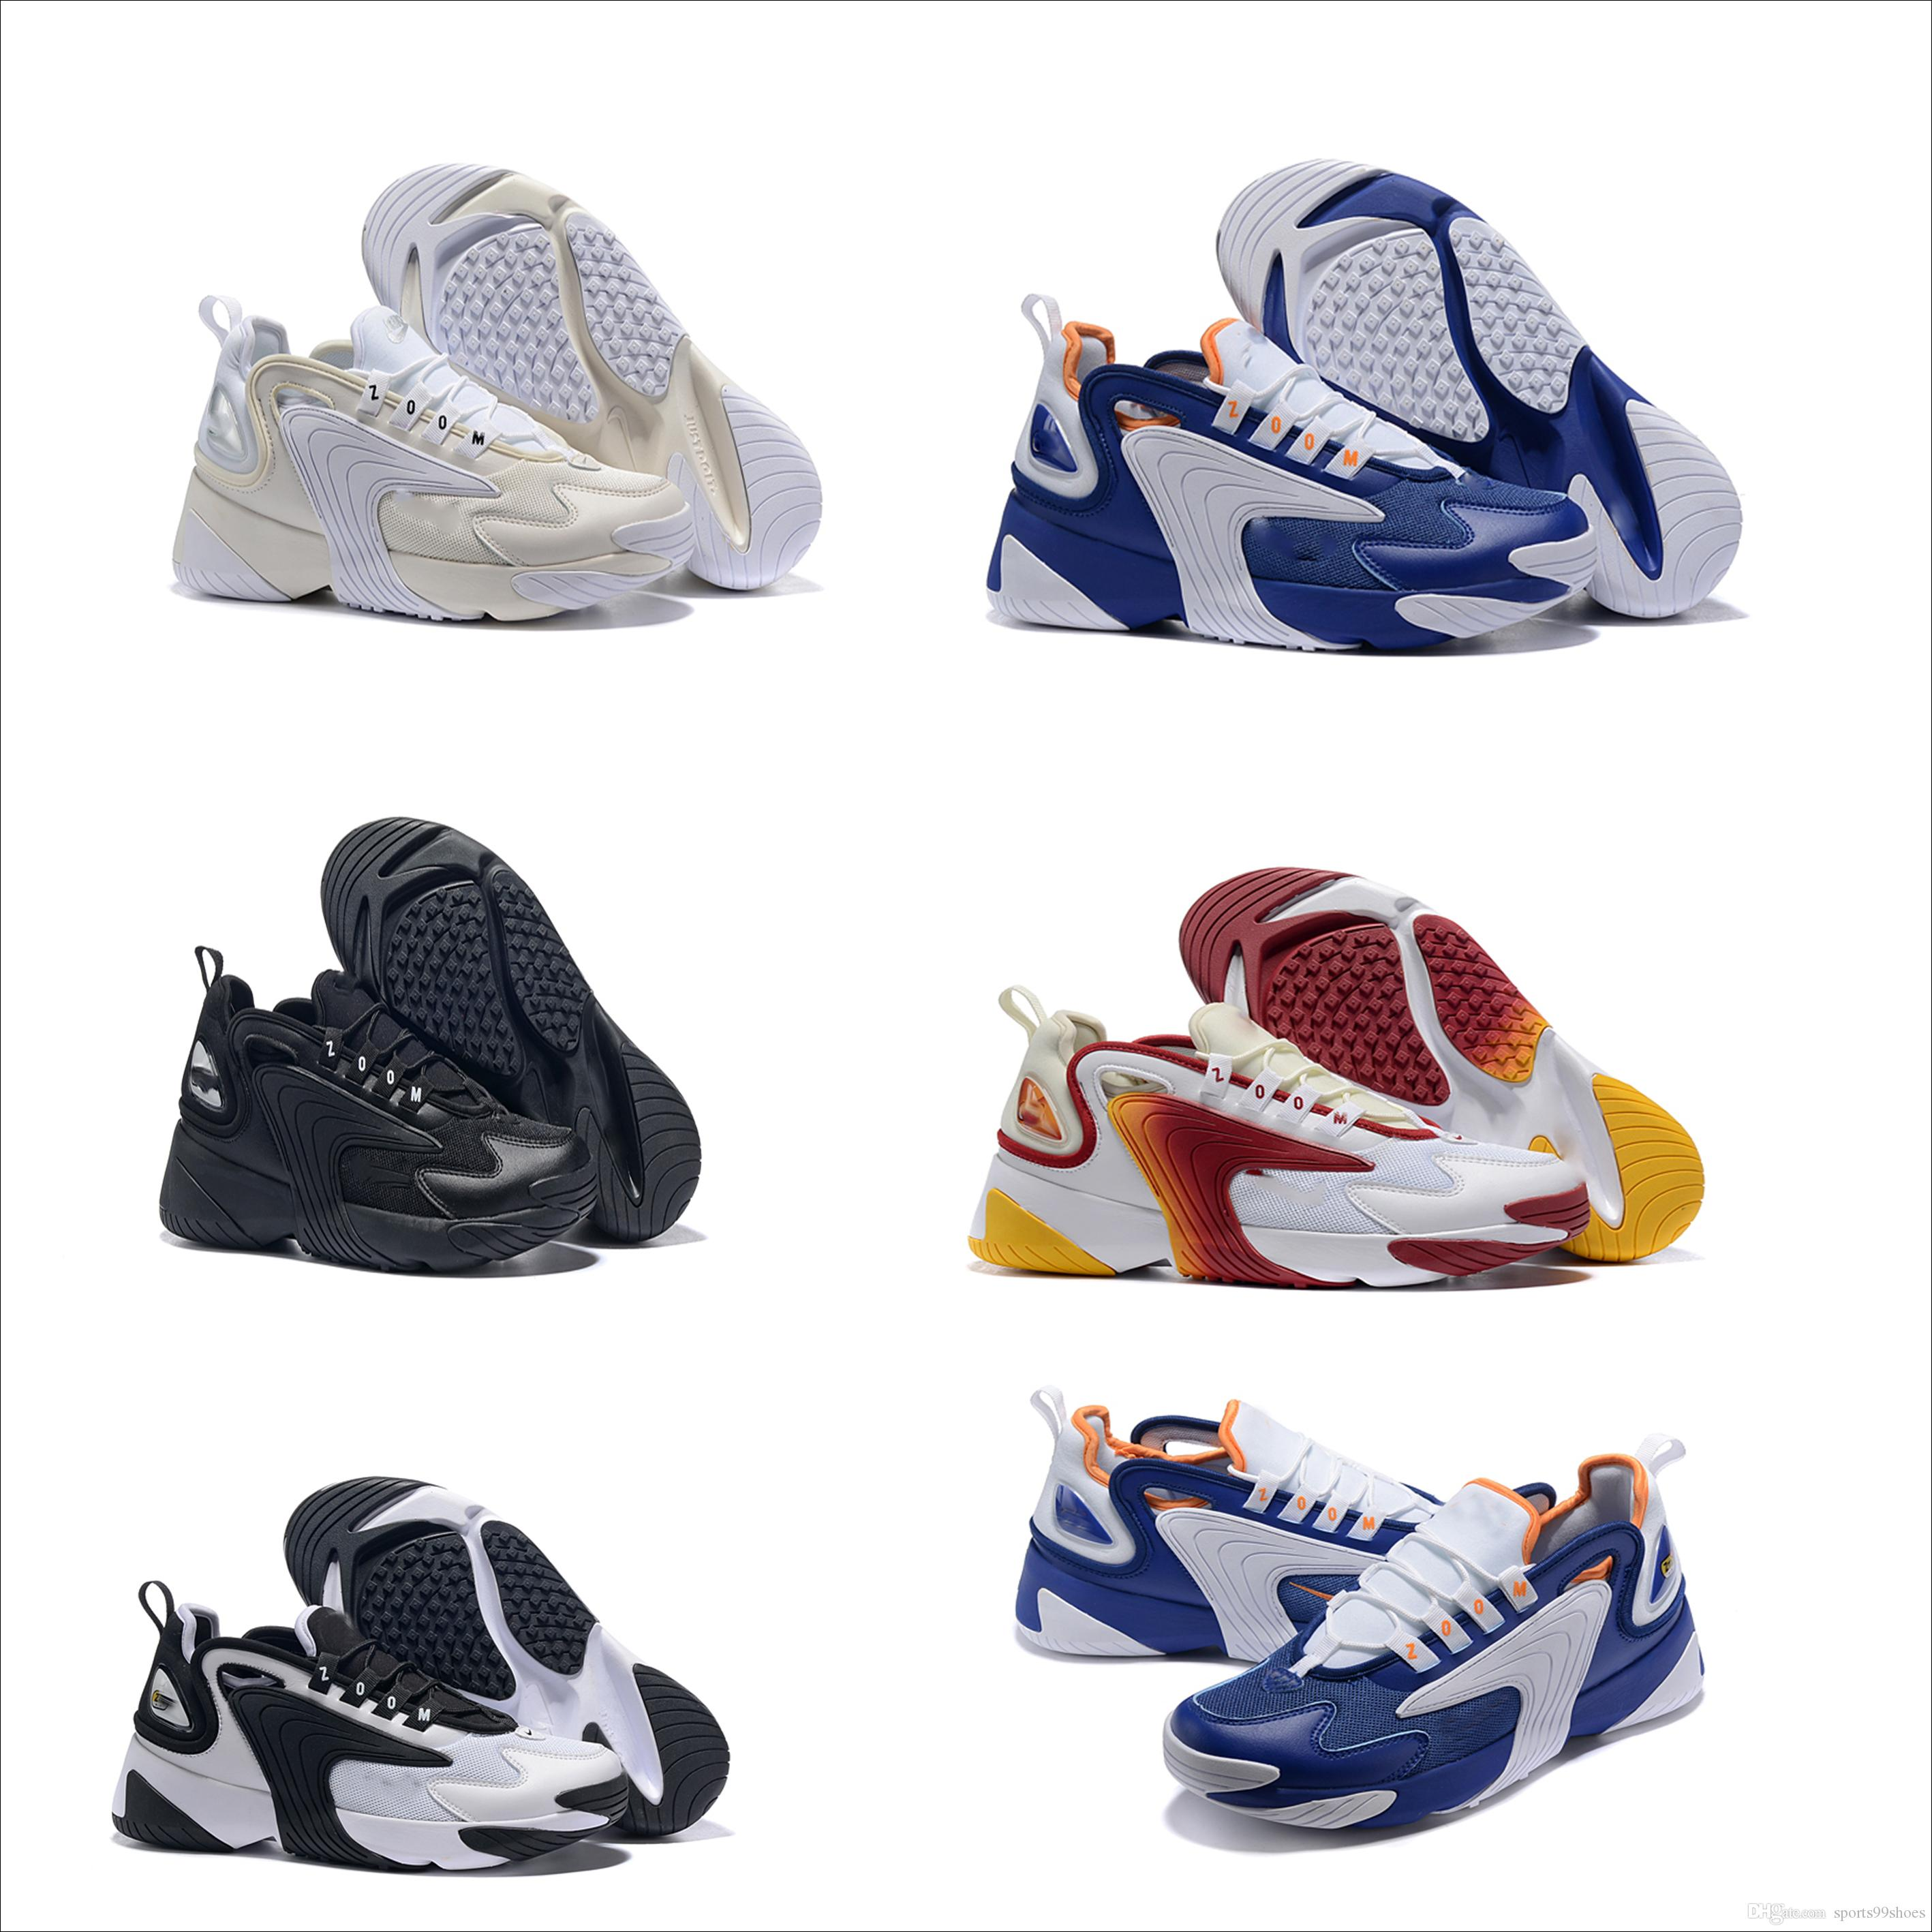 buy popular 32a2b 6ad4e M2k Tekno Zoom 2K Men Casuall Shoes 2000 Black Sail White Orange Navy Good  Quality Designer Sports Shoes Mens Trainer Size 7 12 Comfort Shoes Sneakers  ...